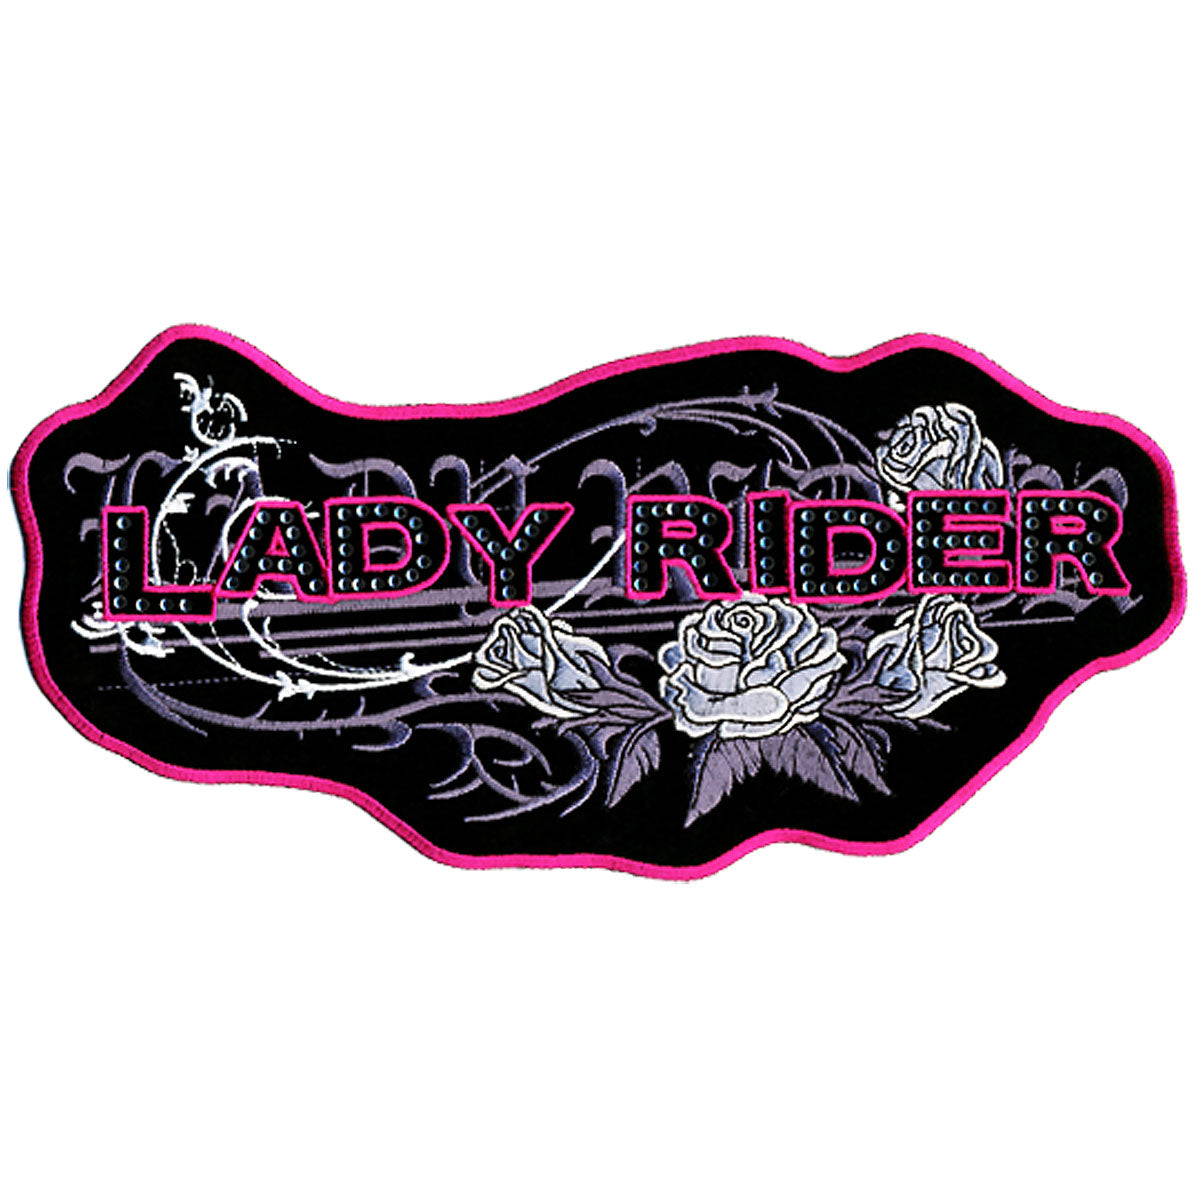 "Hot Leathers Lady Rider Roses 10"" x 5"" Patch"